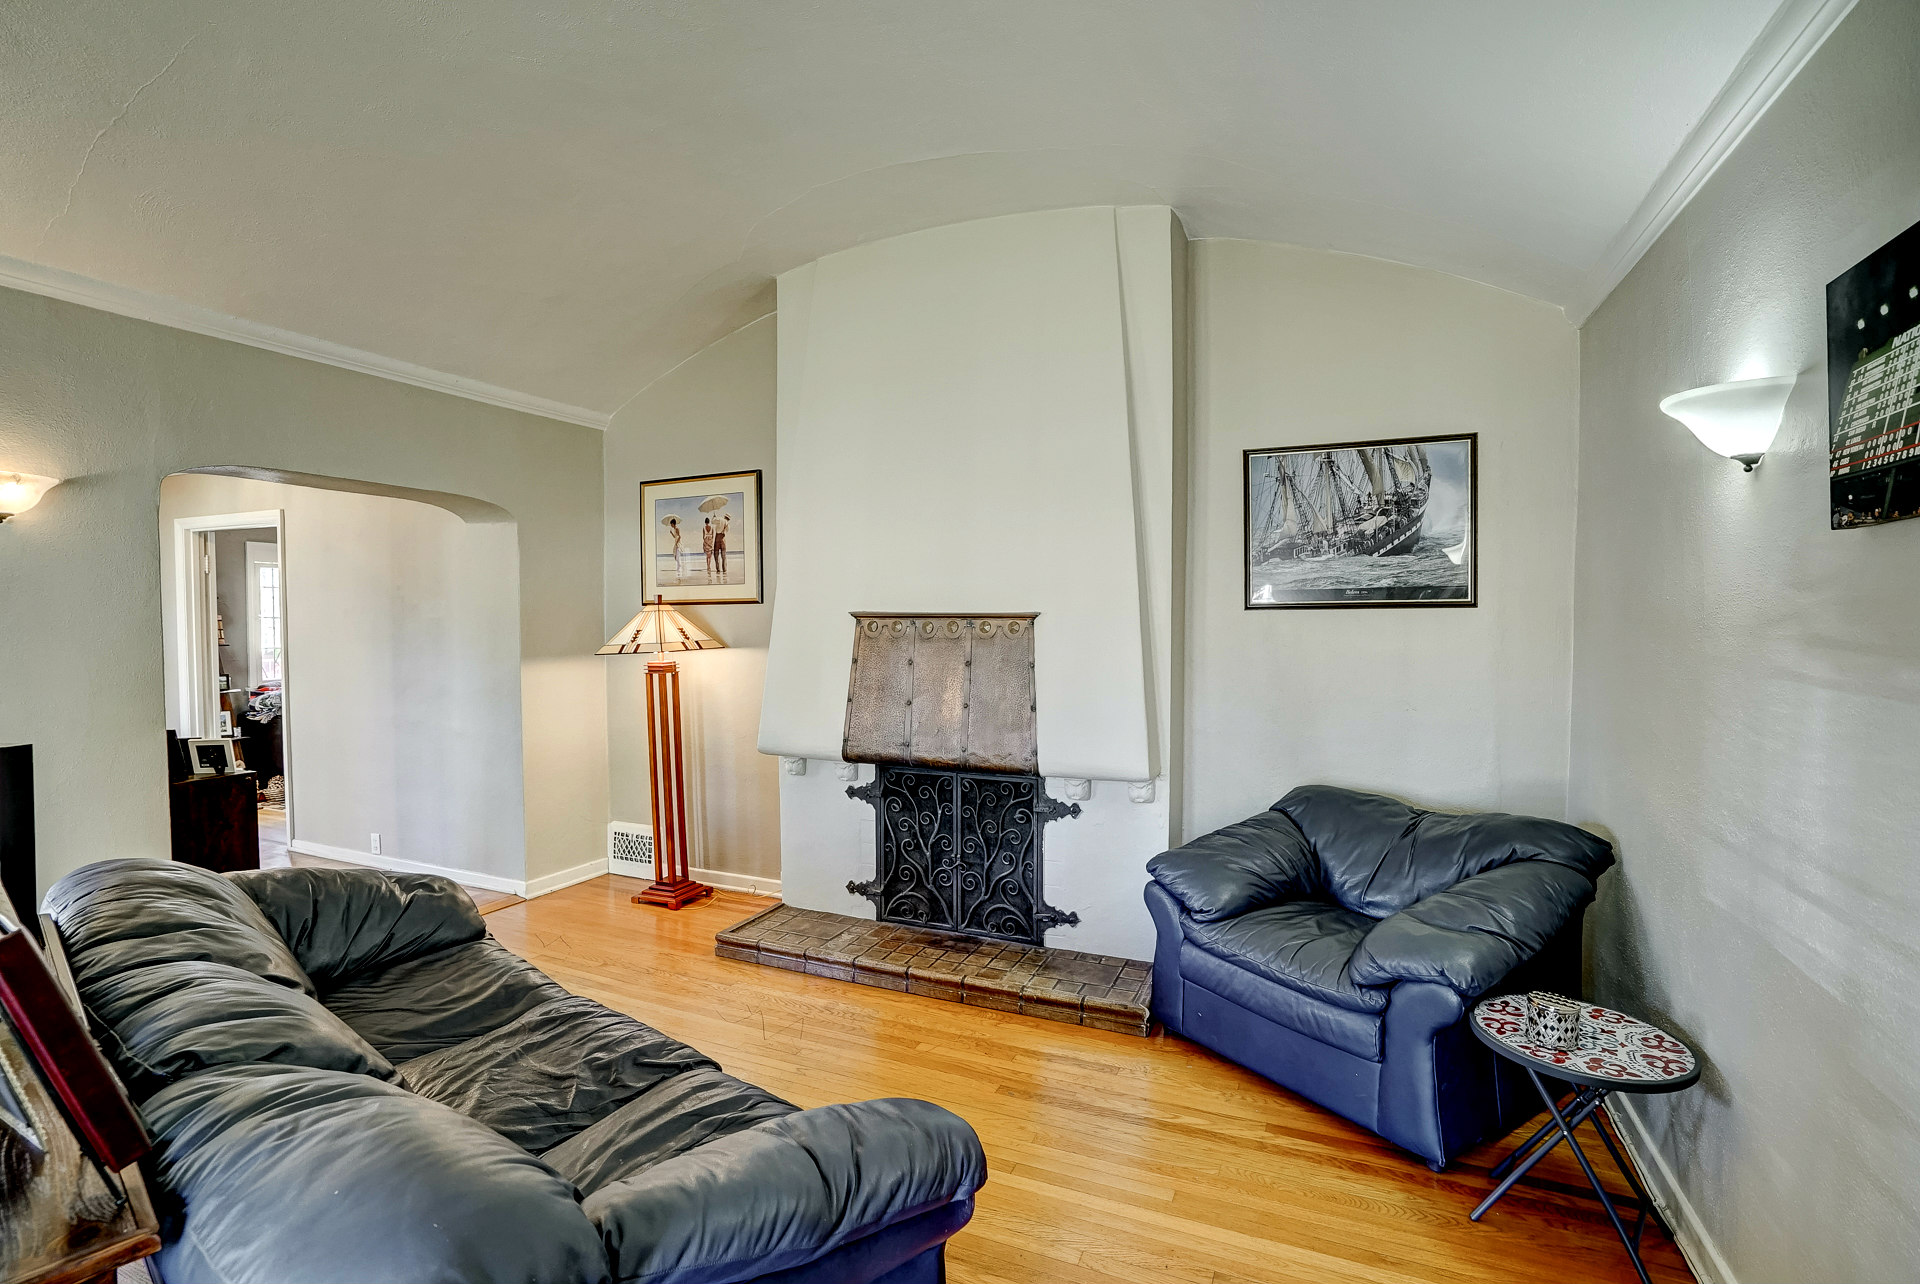 Round ceiling in living room with original hardwood floors and wood-burning fireplace.